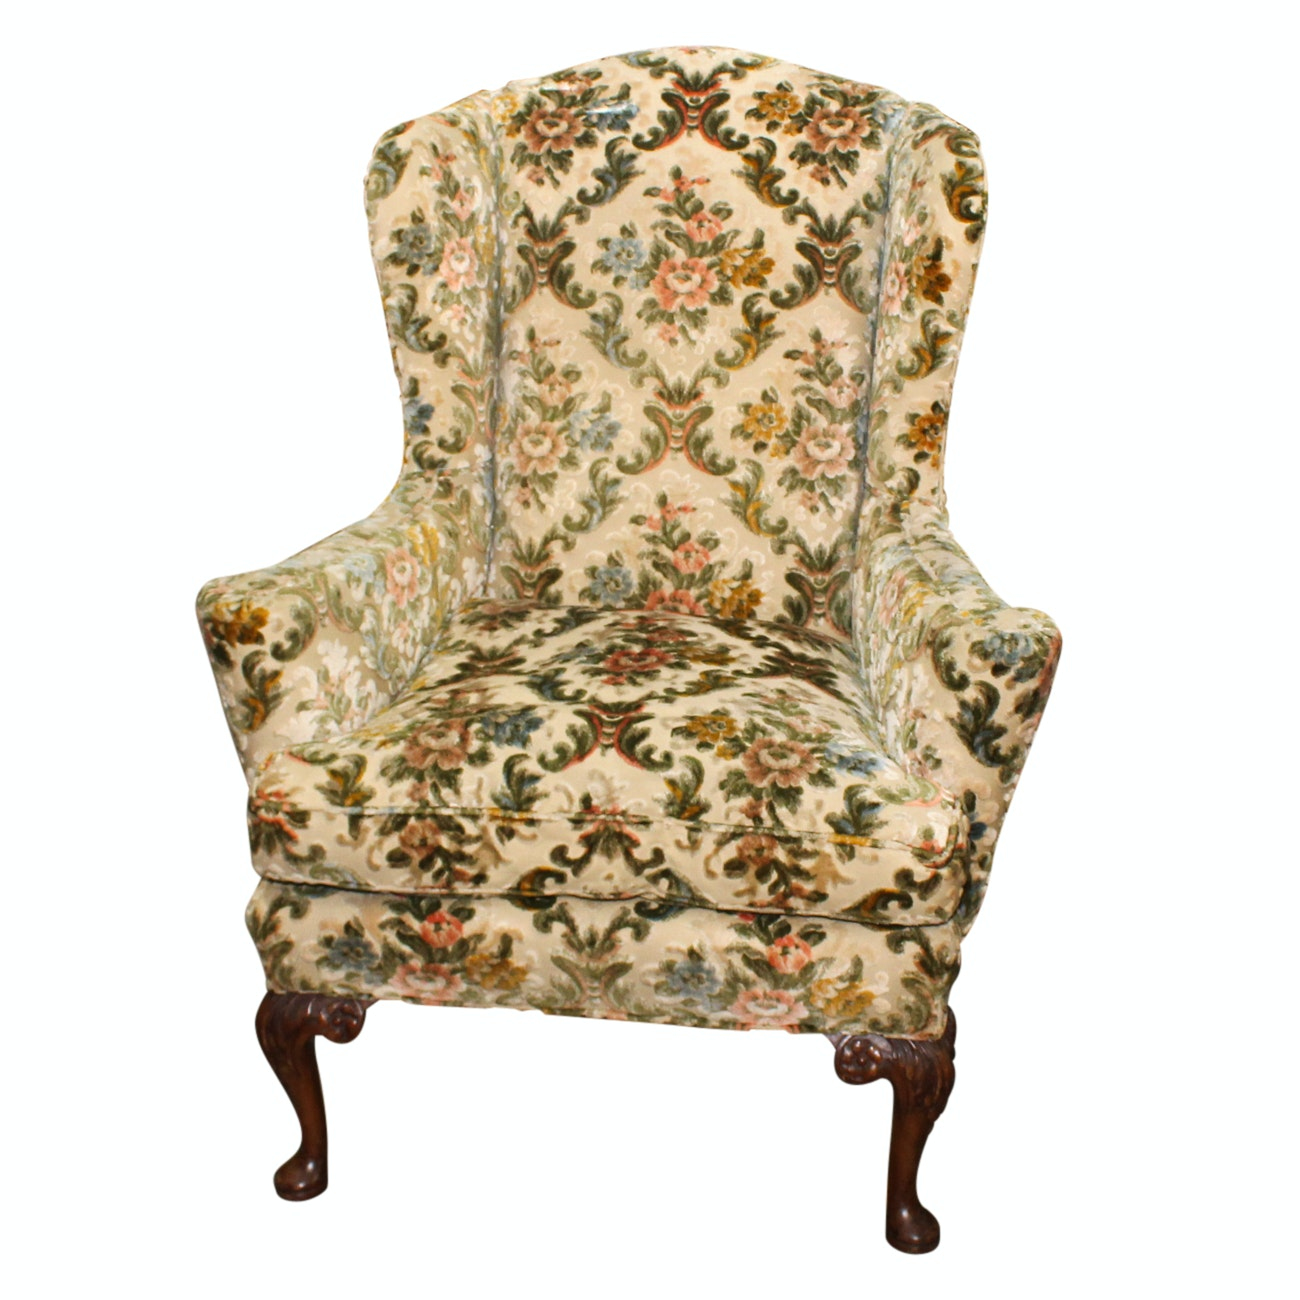 George III Style Carved Mahogany Wing Chair, 20th Century